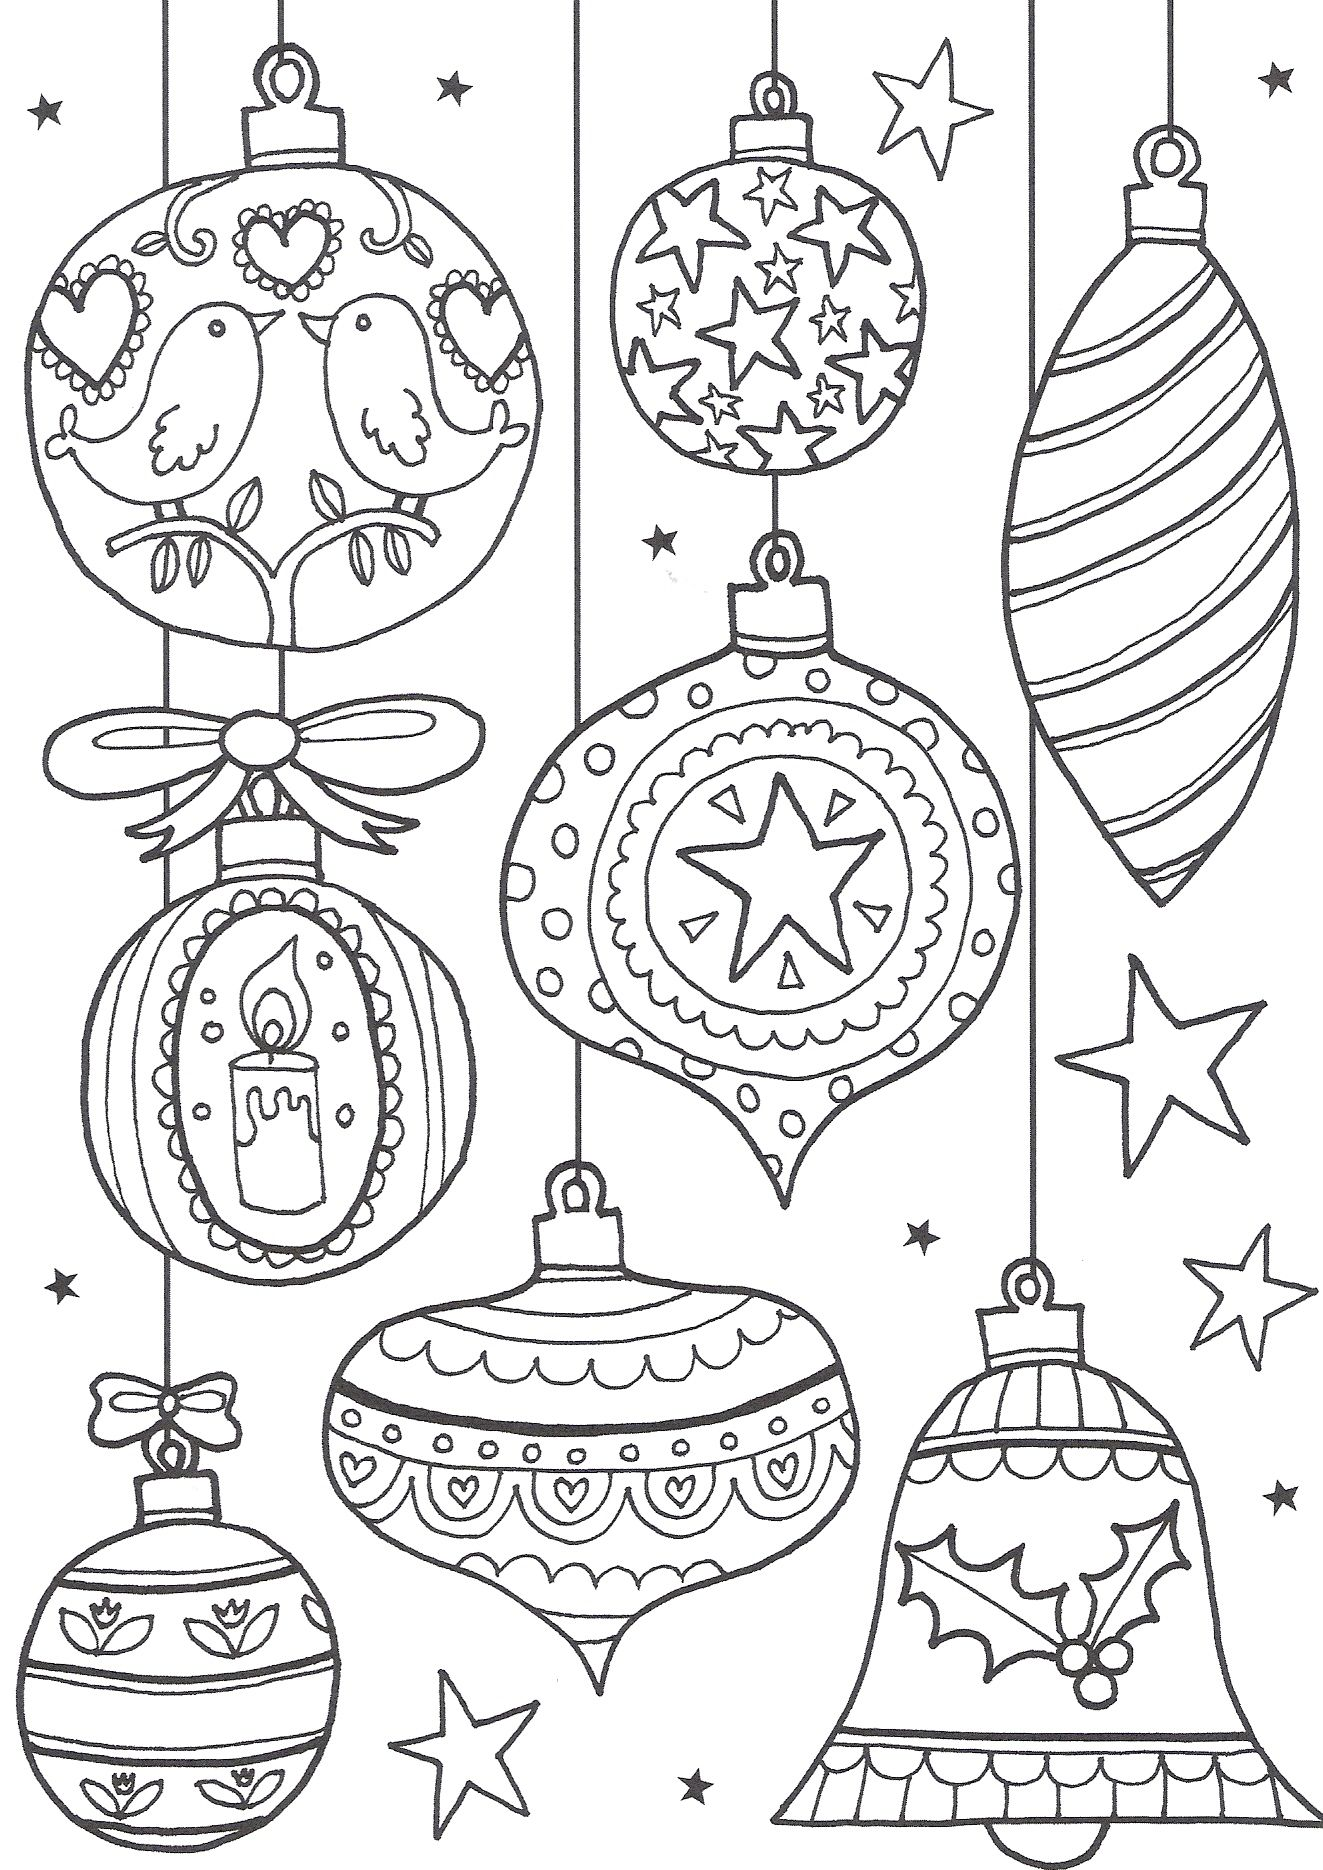 Christmas Coloring Sheets For Elementary With Free Colouring Pages Adults The Ultimate Roundup